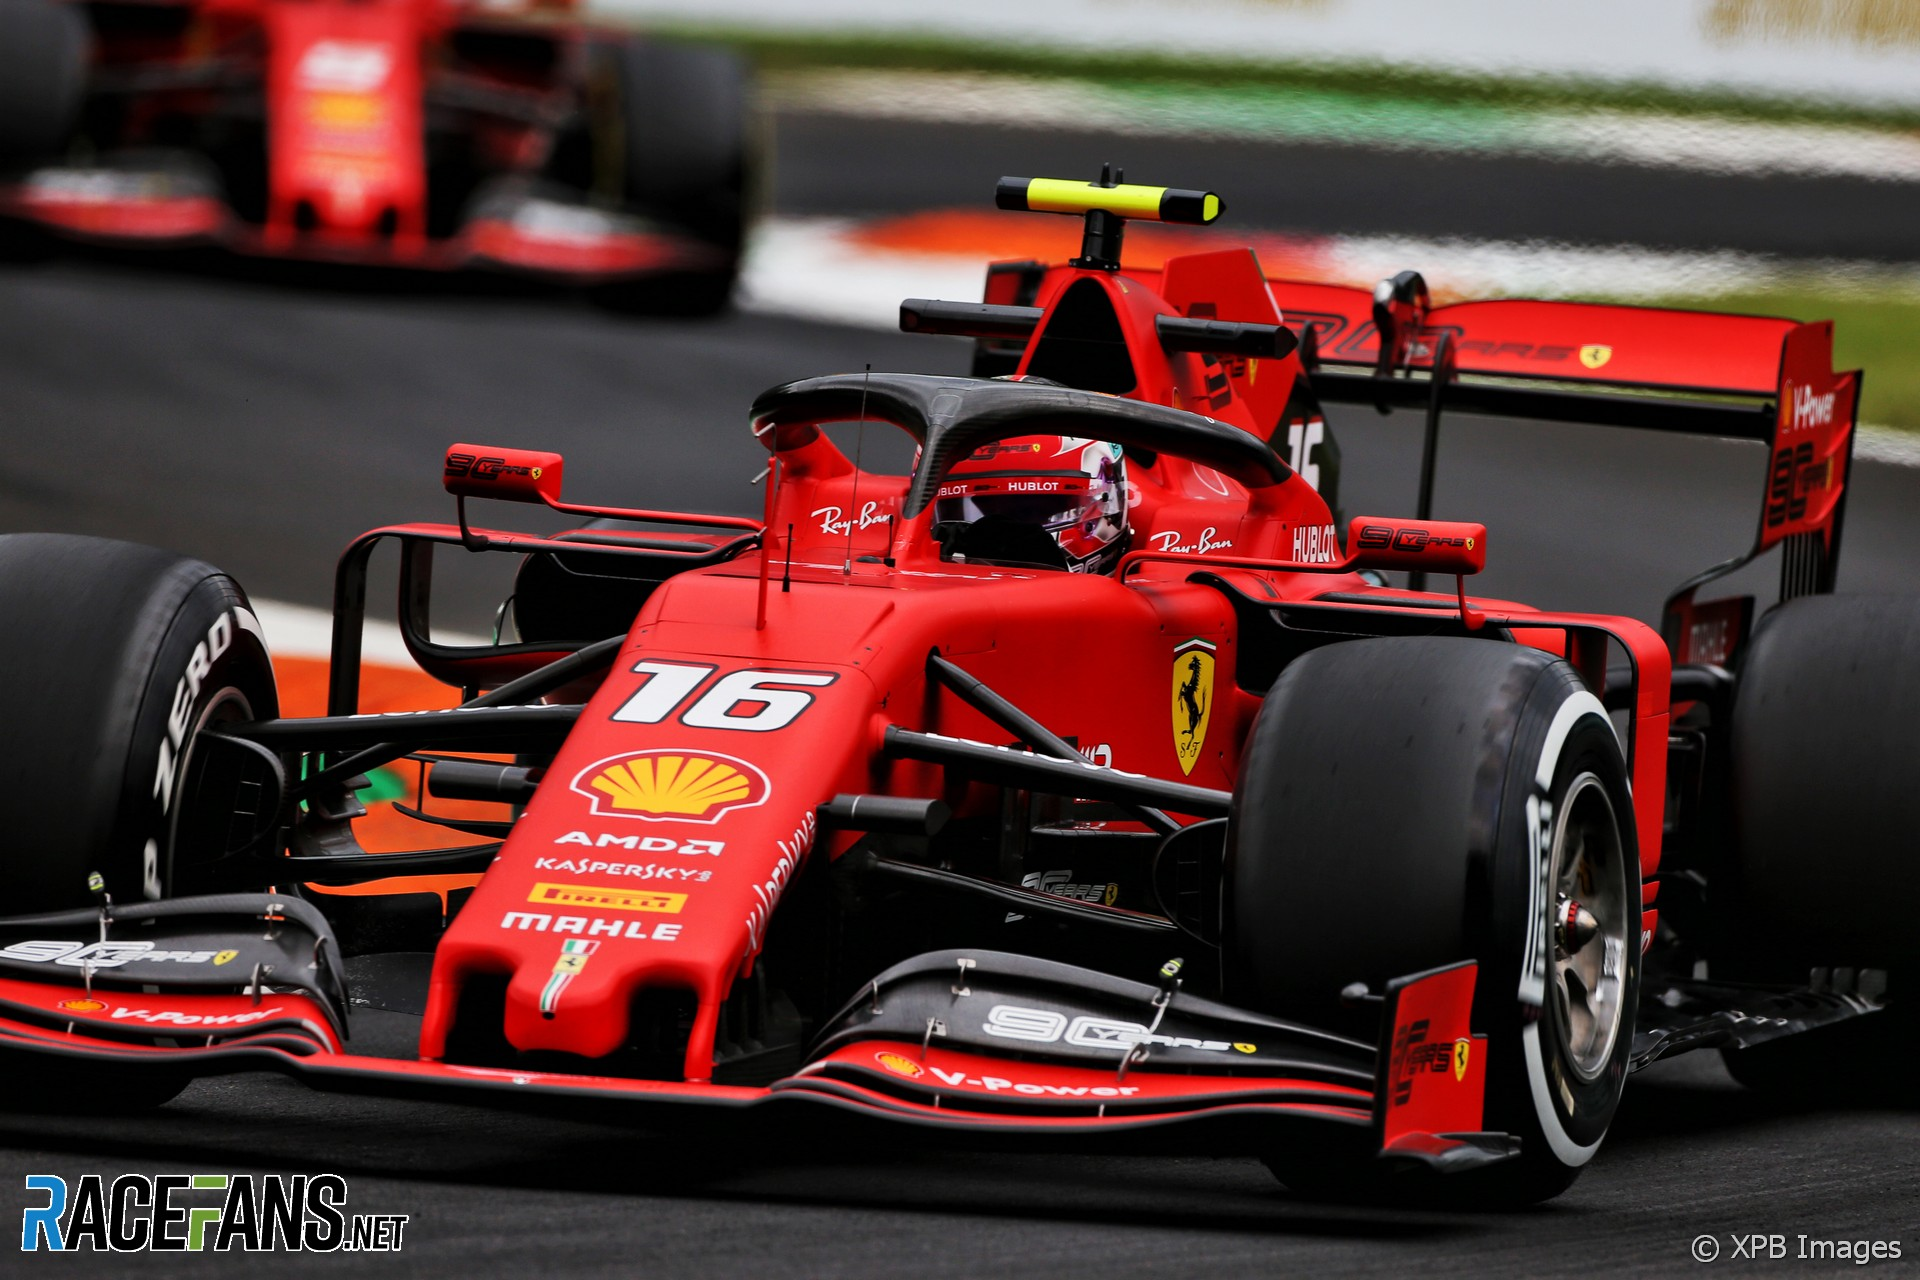 Leclerc stays ahead but Hamilton is close in second practice